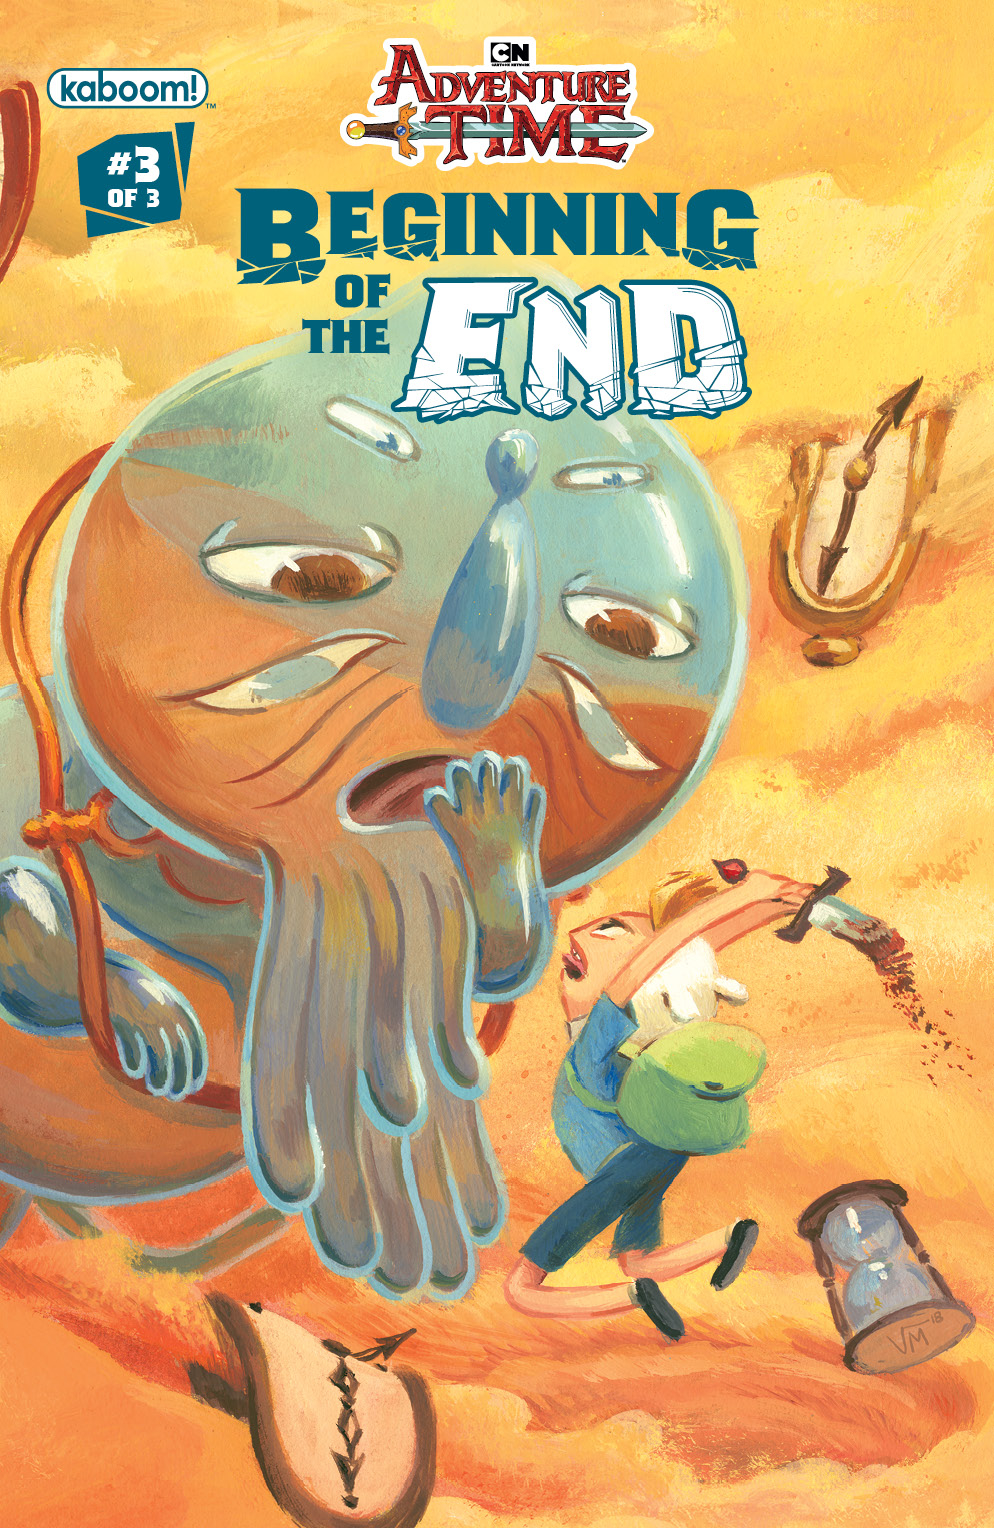 ADVENTURE TIME BEGINNING OF END #3